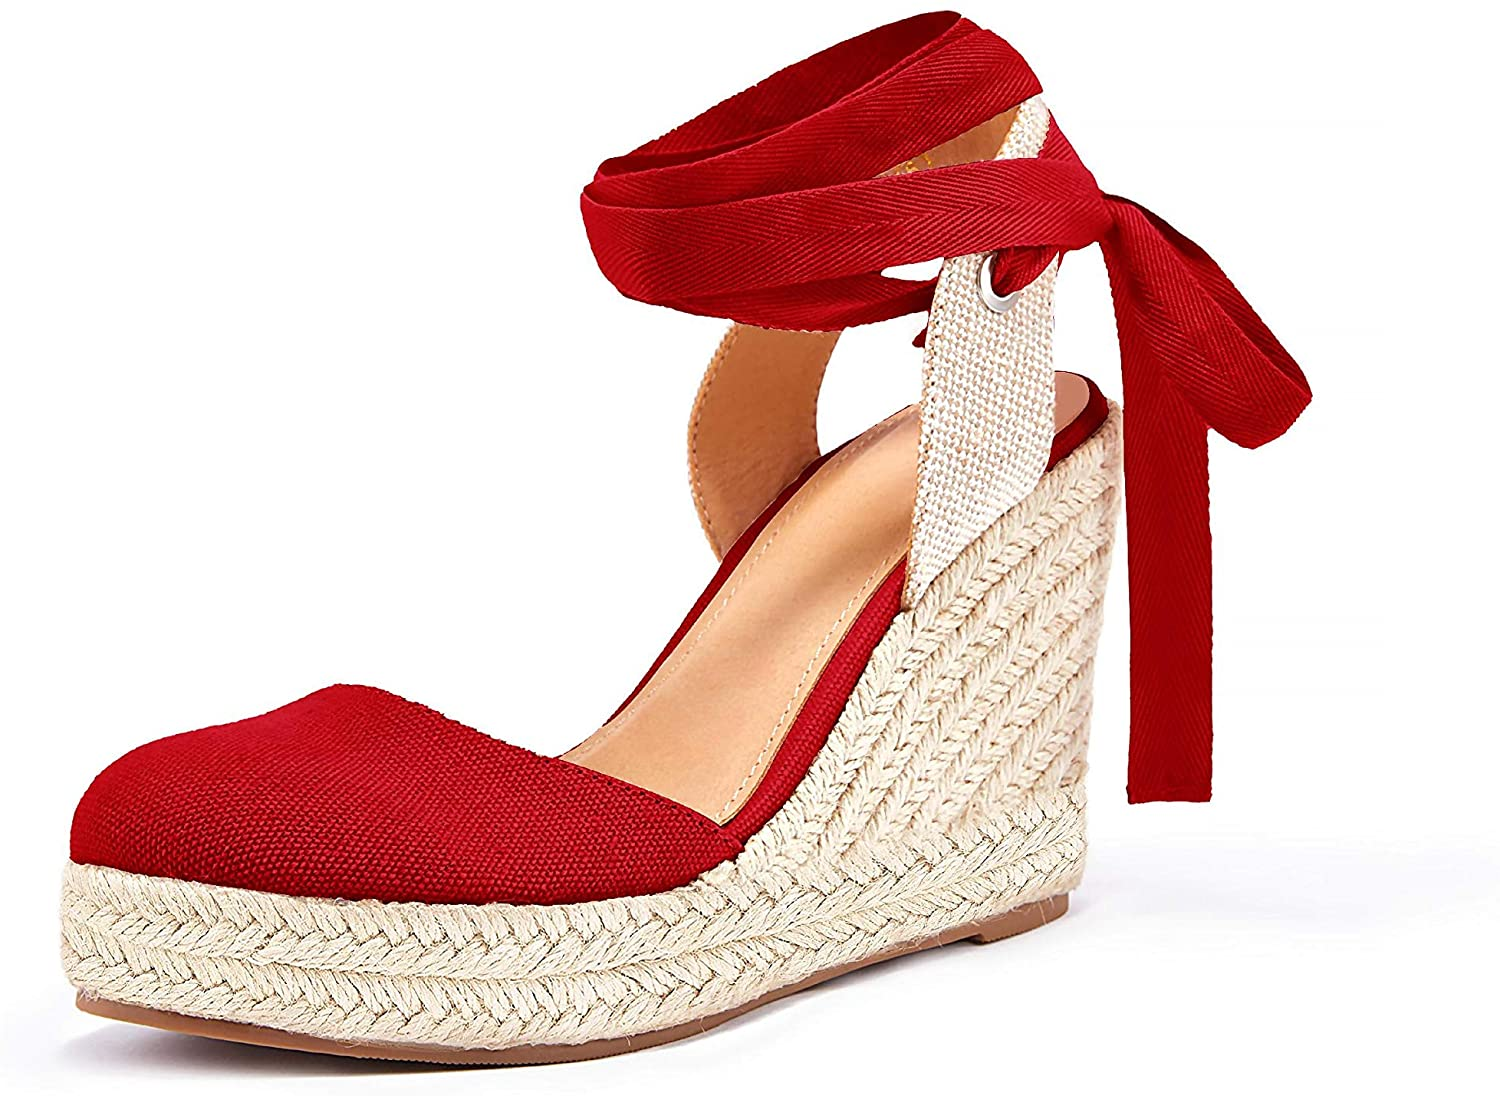 Nailyhome Womens Espadrille Platform Wedge Sandals Ankl Toe Finally resale start Open Max 48% OFF